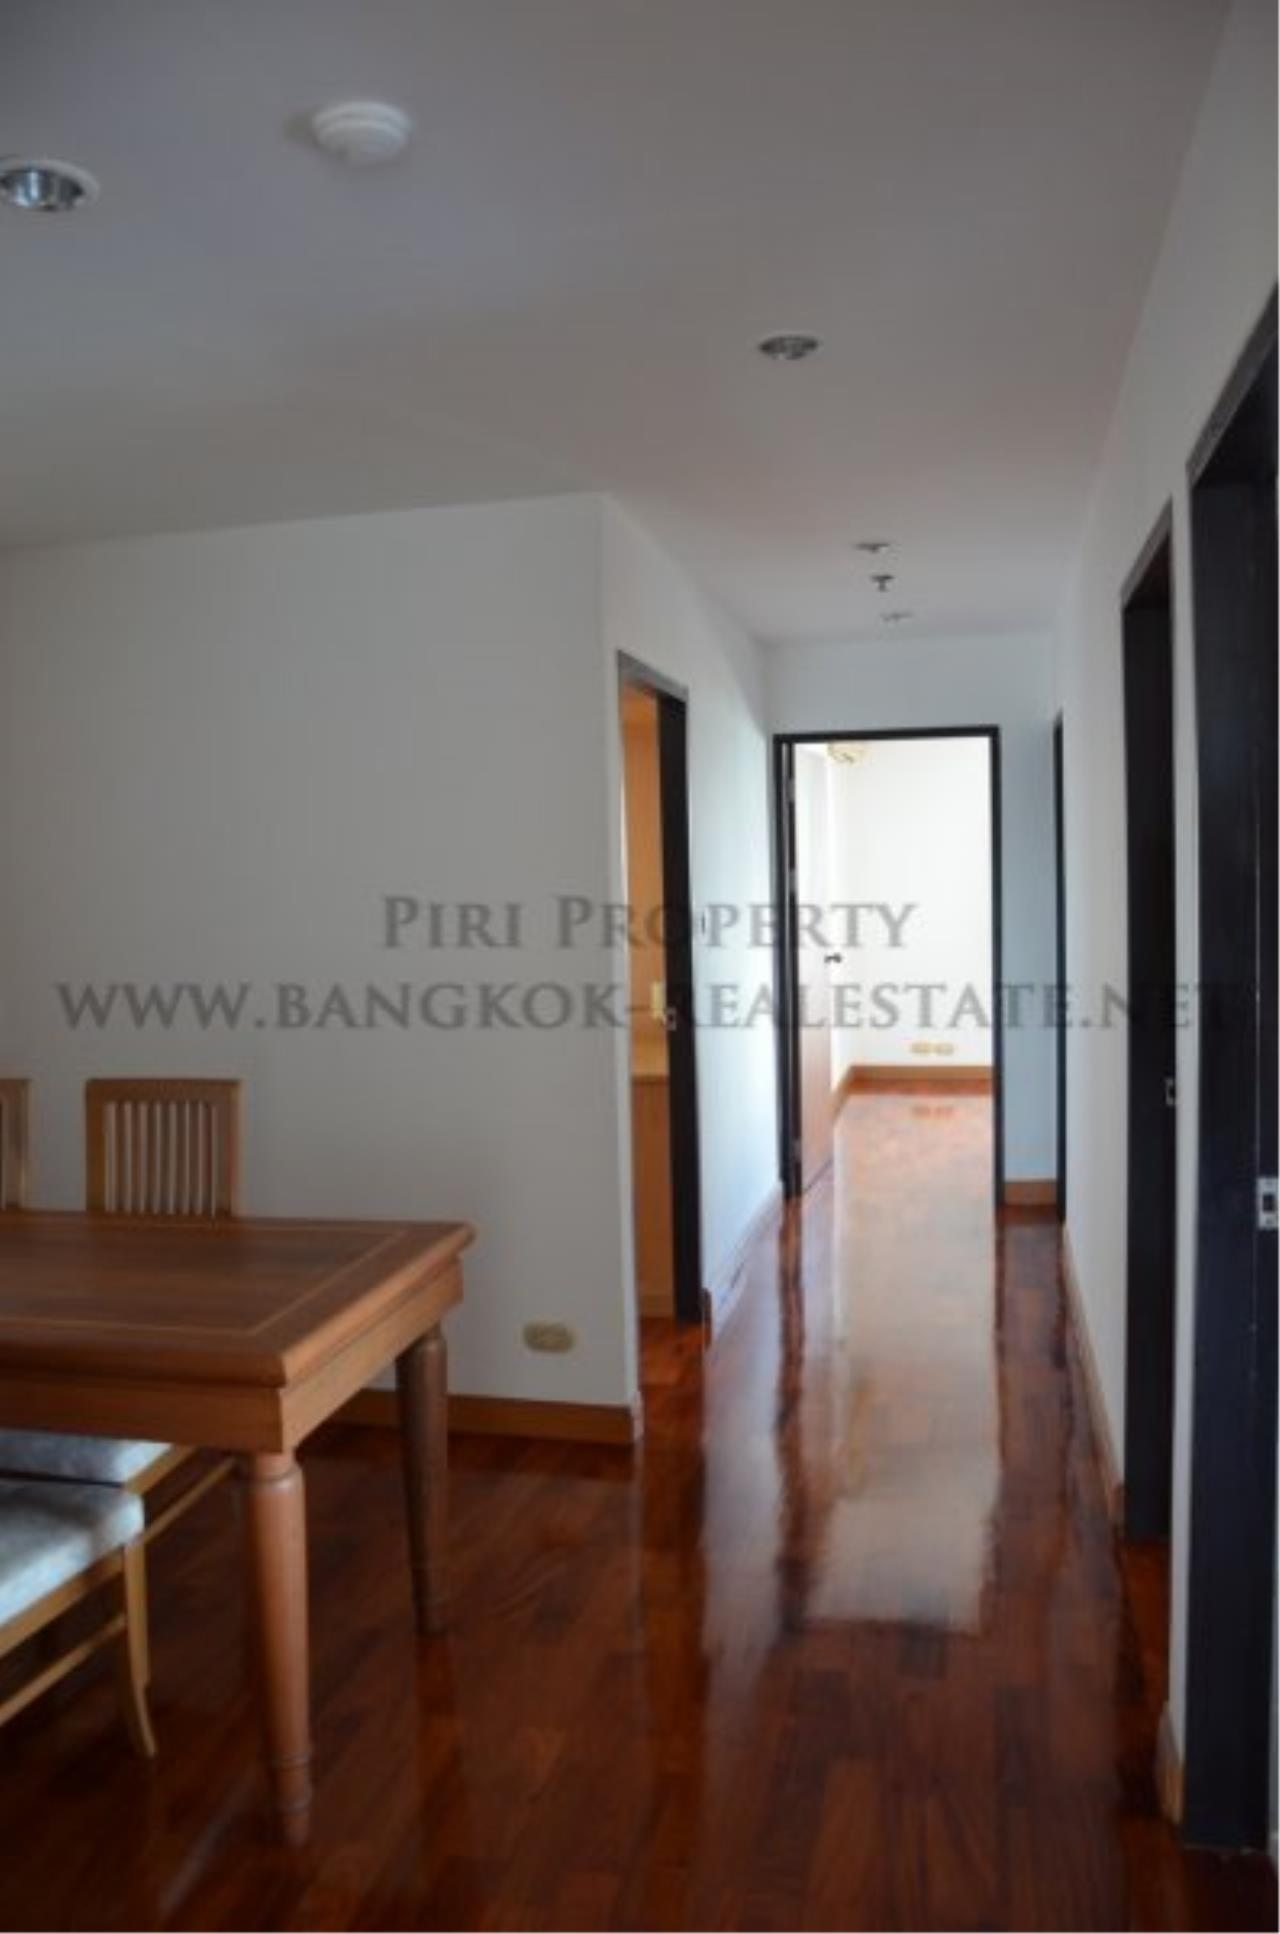 Piri Property Agency's Spacious 3 Bedroom Condo in Ekkamai - 128 SQM for 50K - Top View Tower - 30th Floor 17